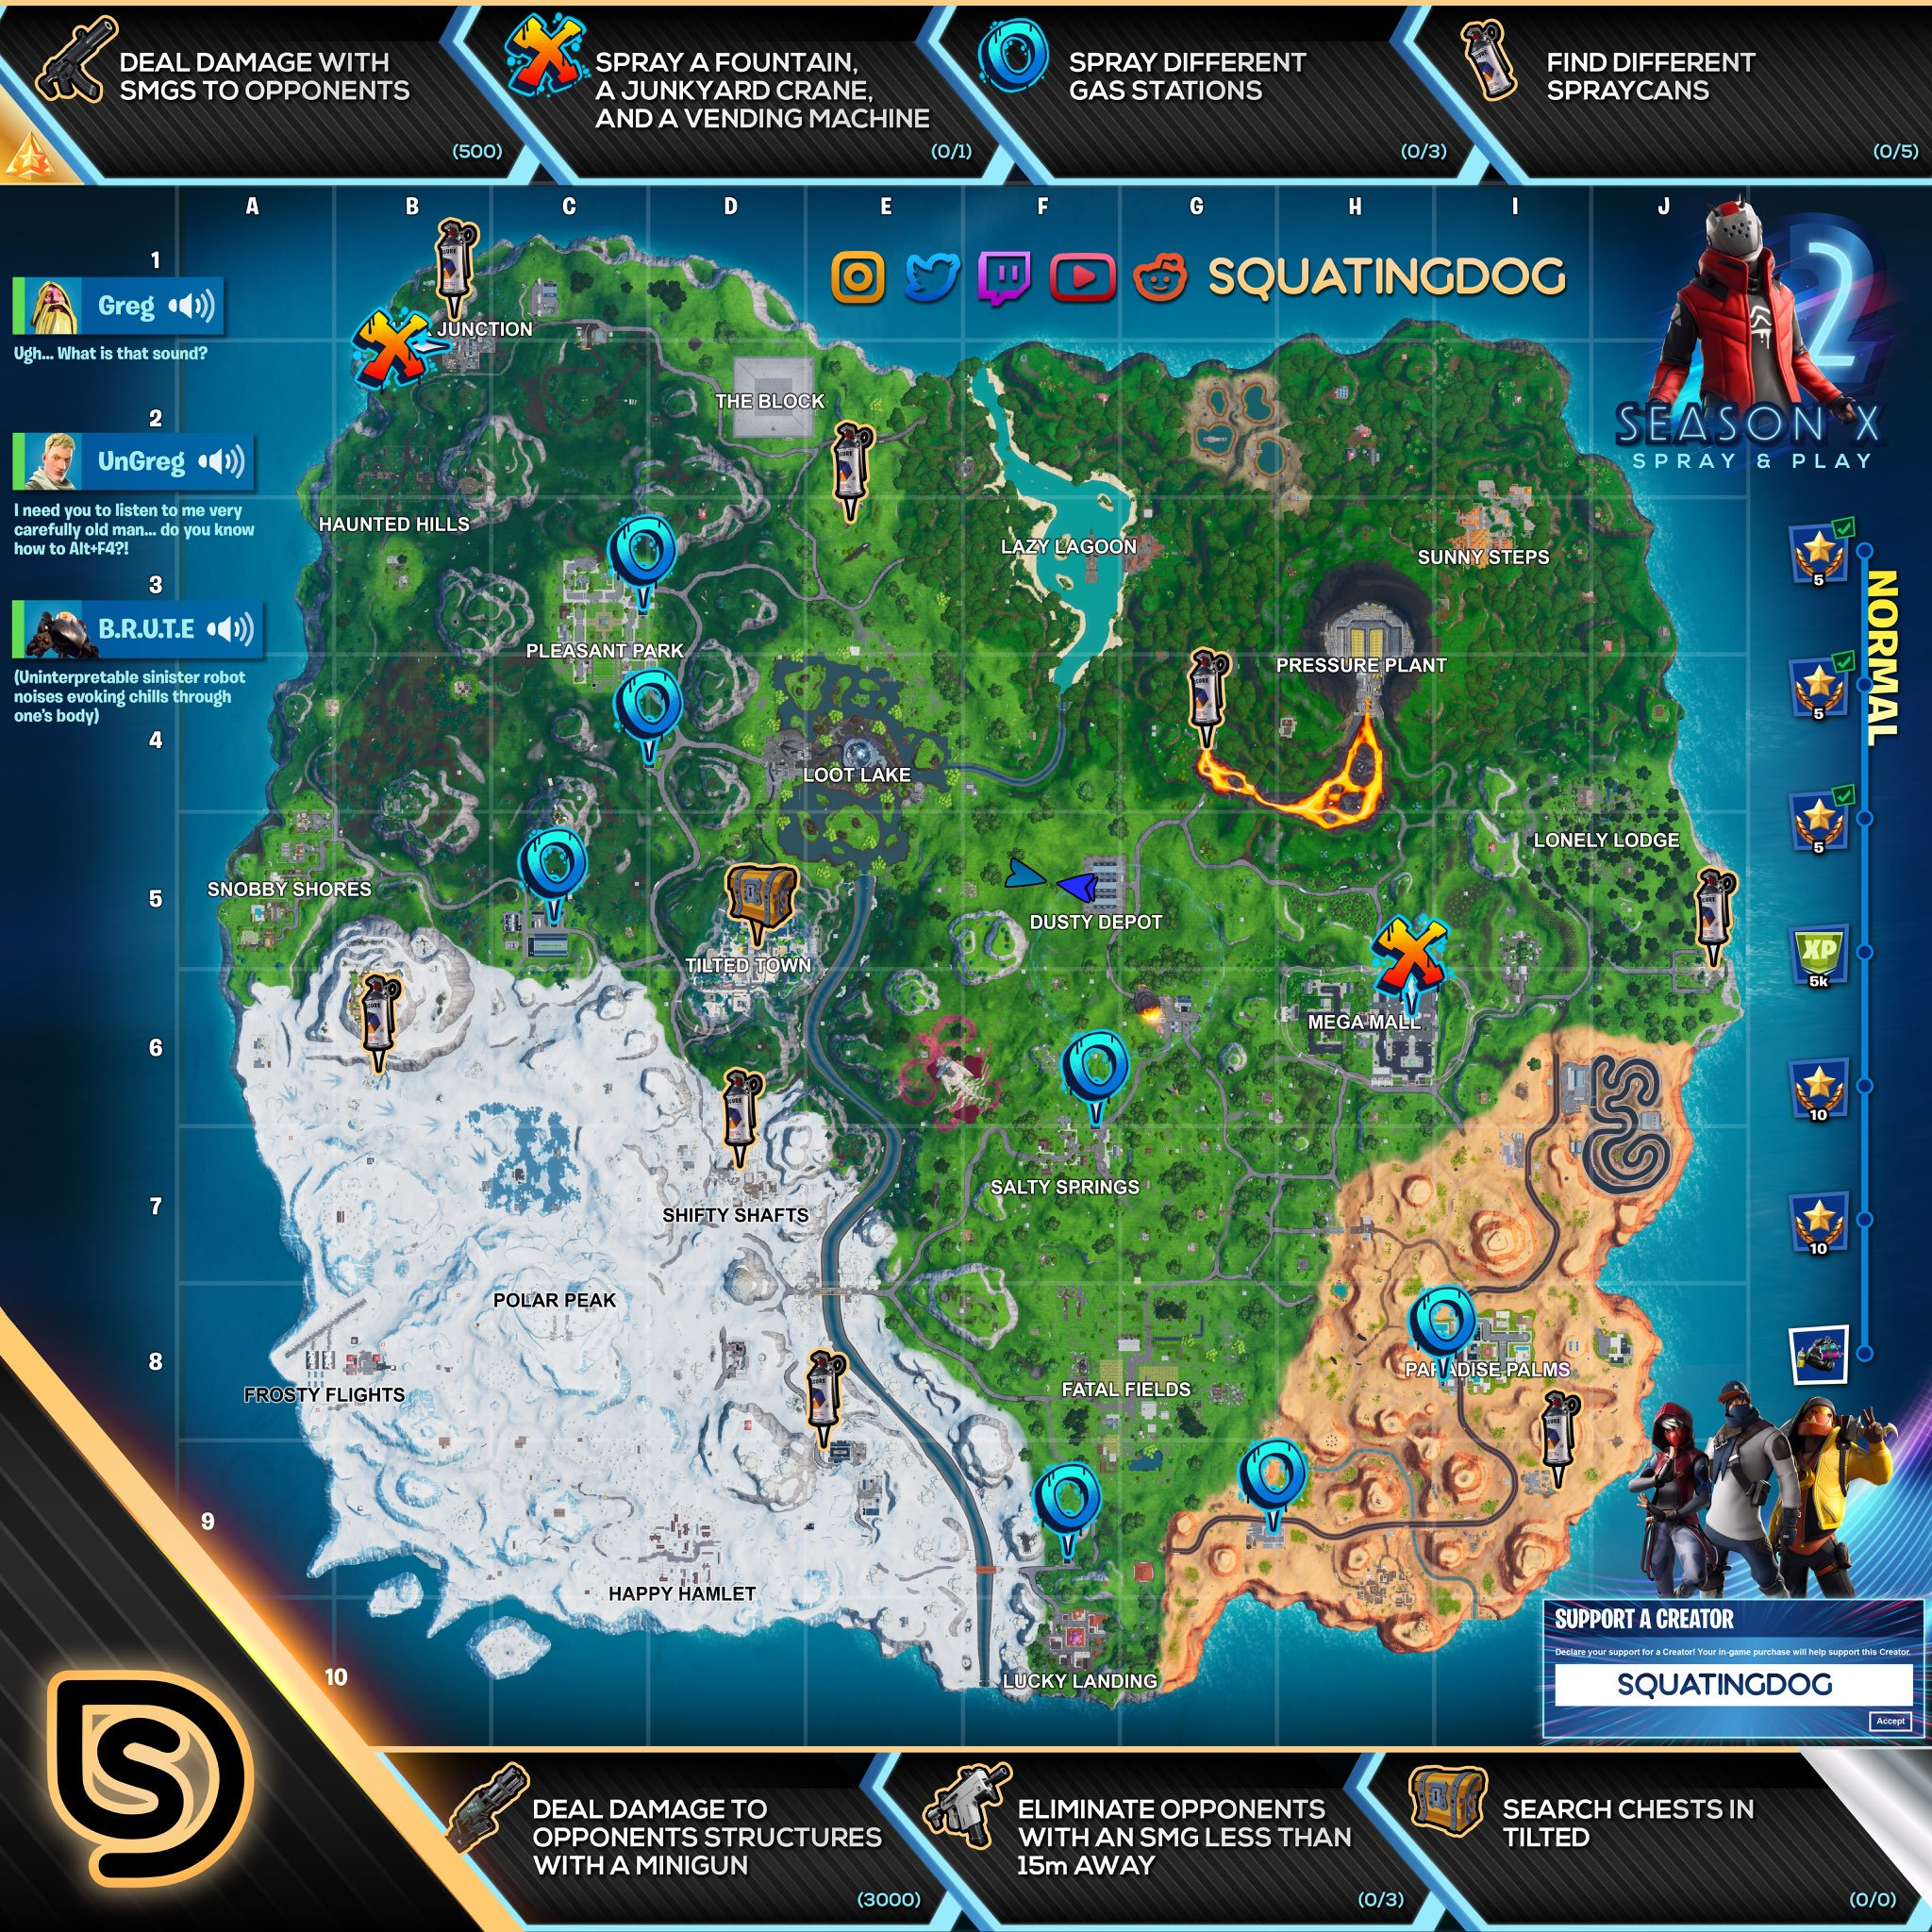 Fortnite Season X Week 2 Spray & Pray Normal Challenges Cheat Sheet